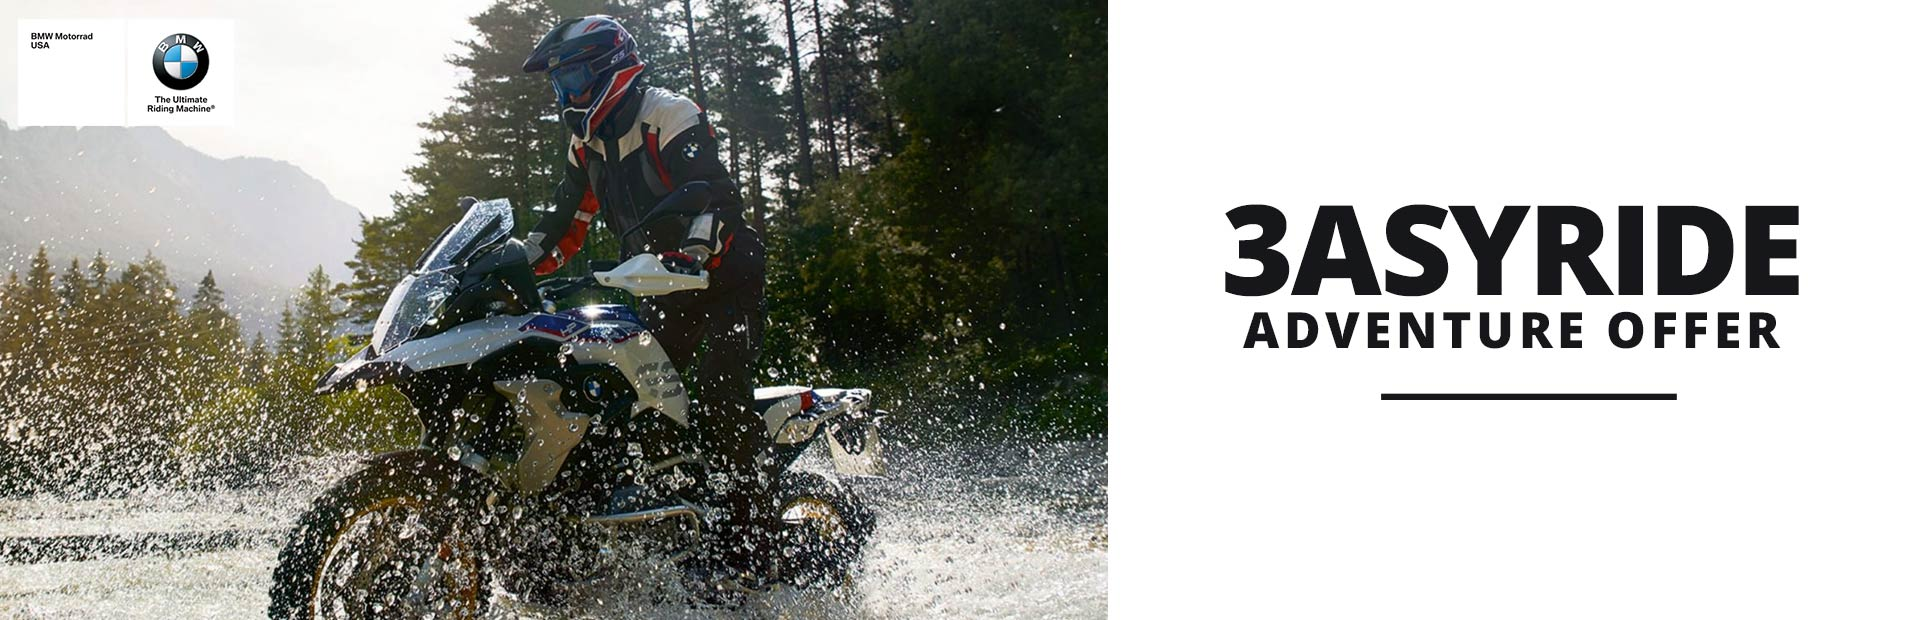 BMW: 3asyRide Adventure Offer